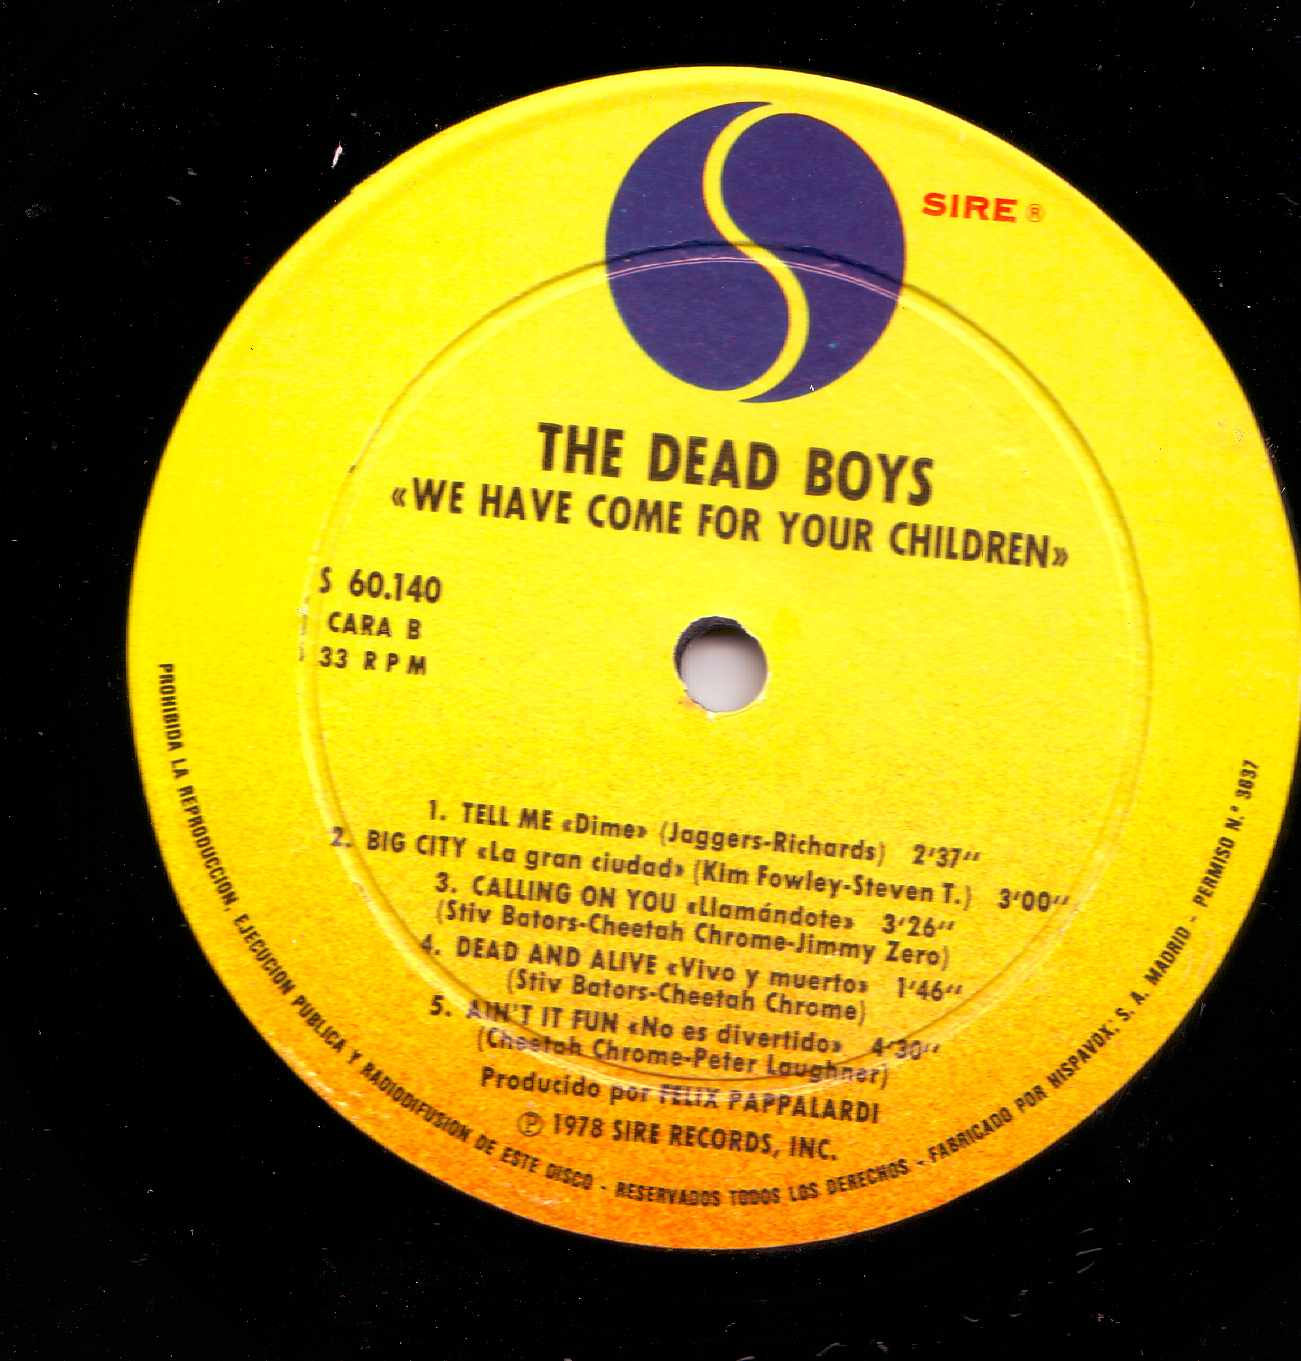 The Dead boys -We have come for your children Lp 1978Dead Boys We Have Come For Your Children